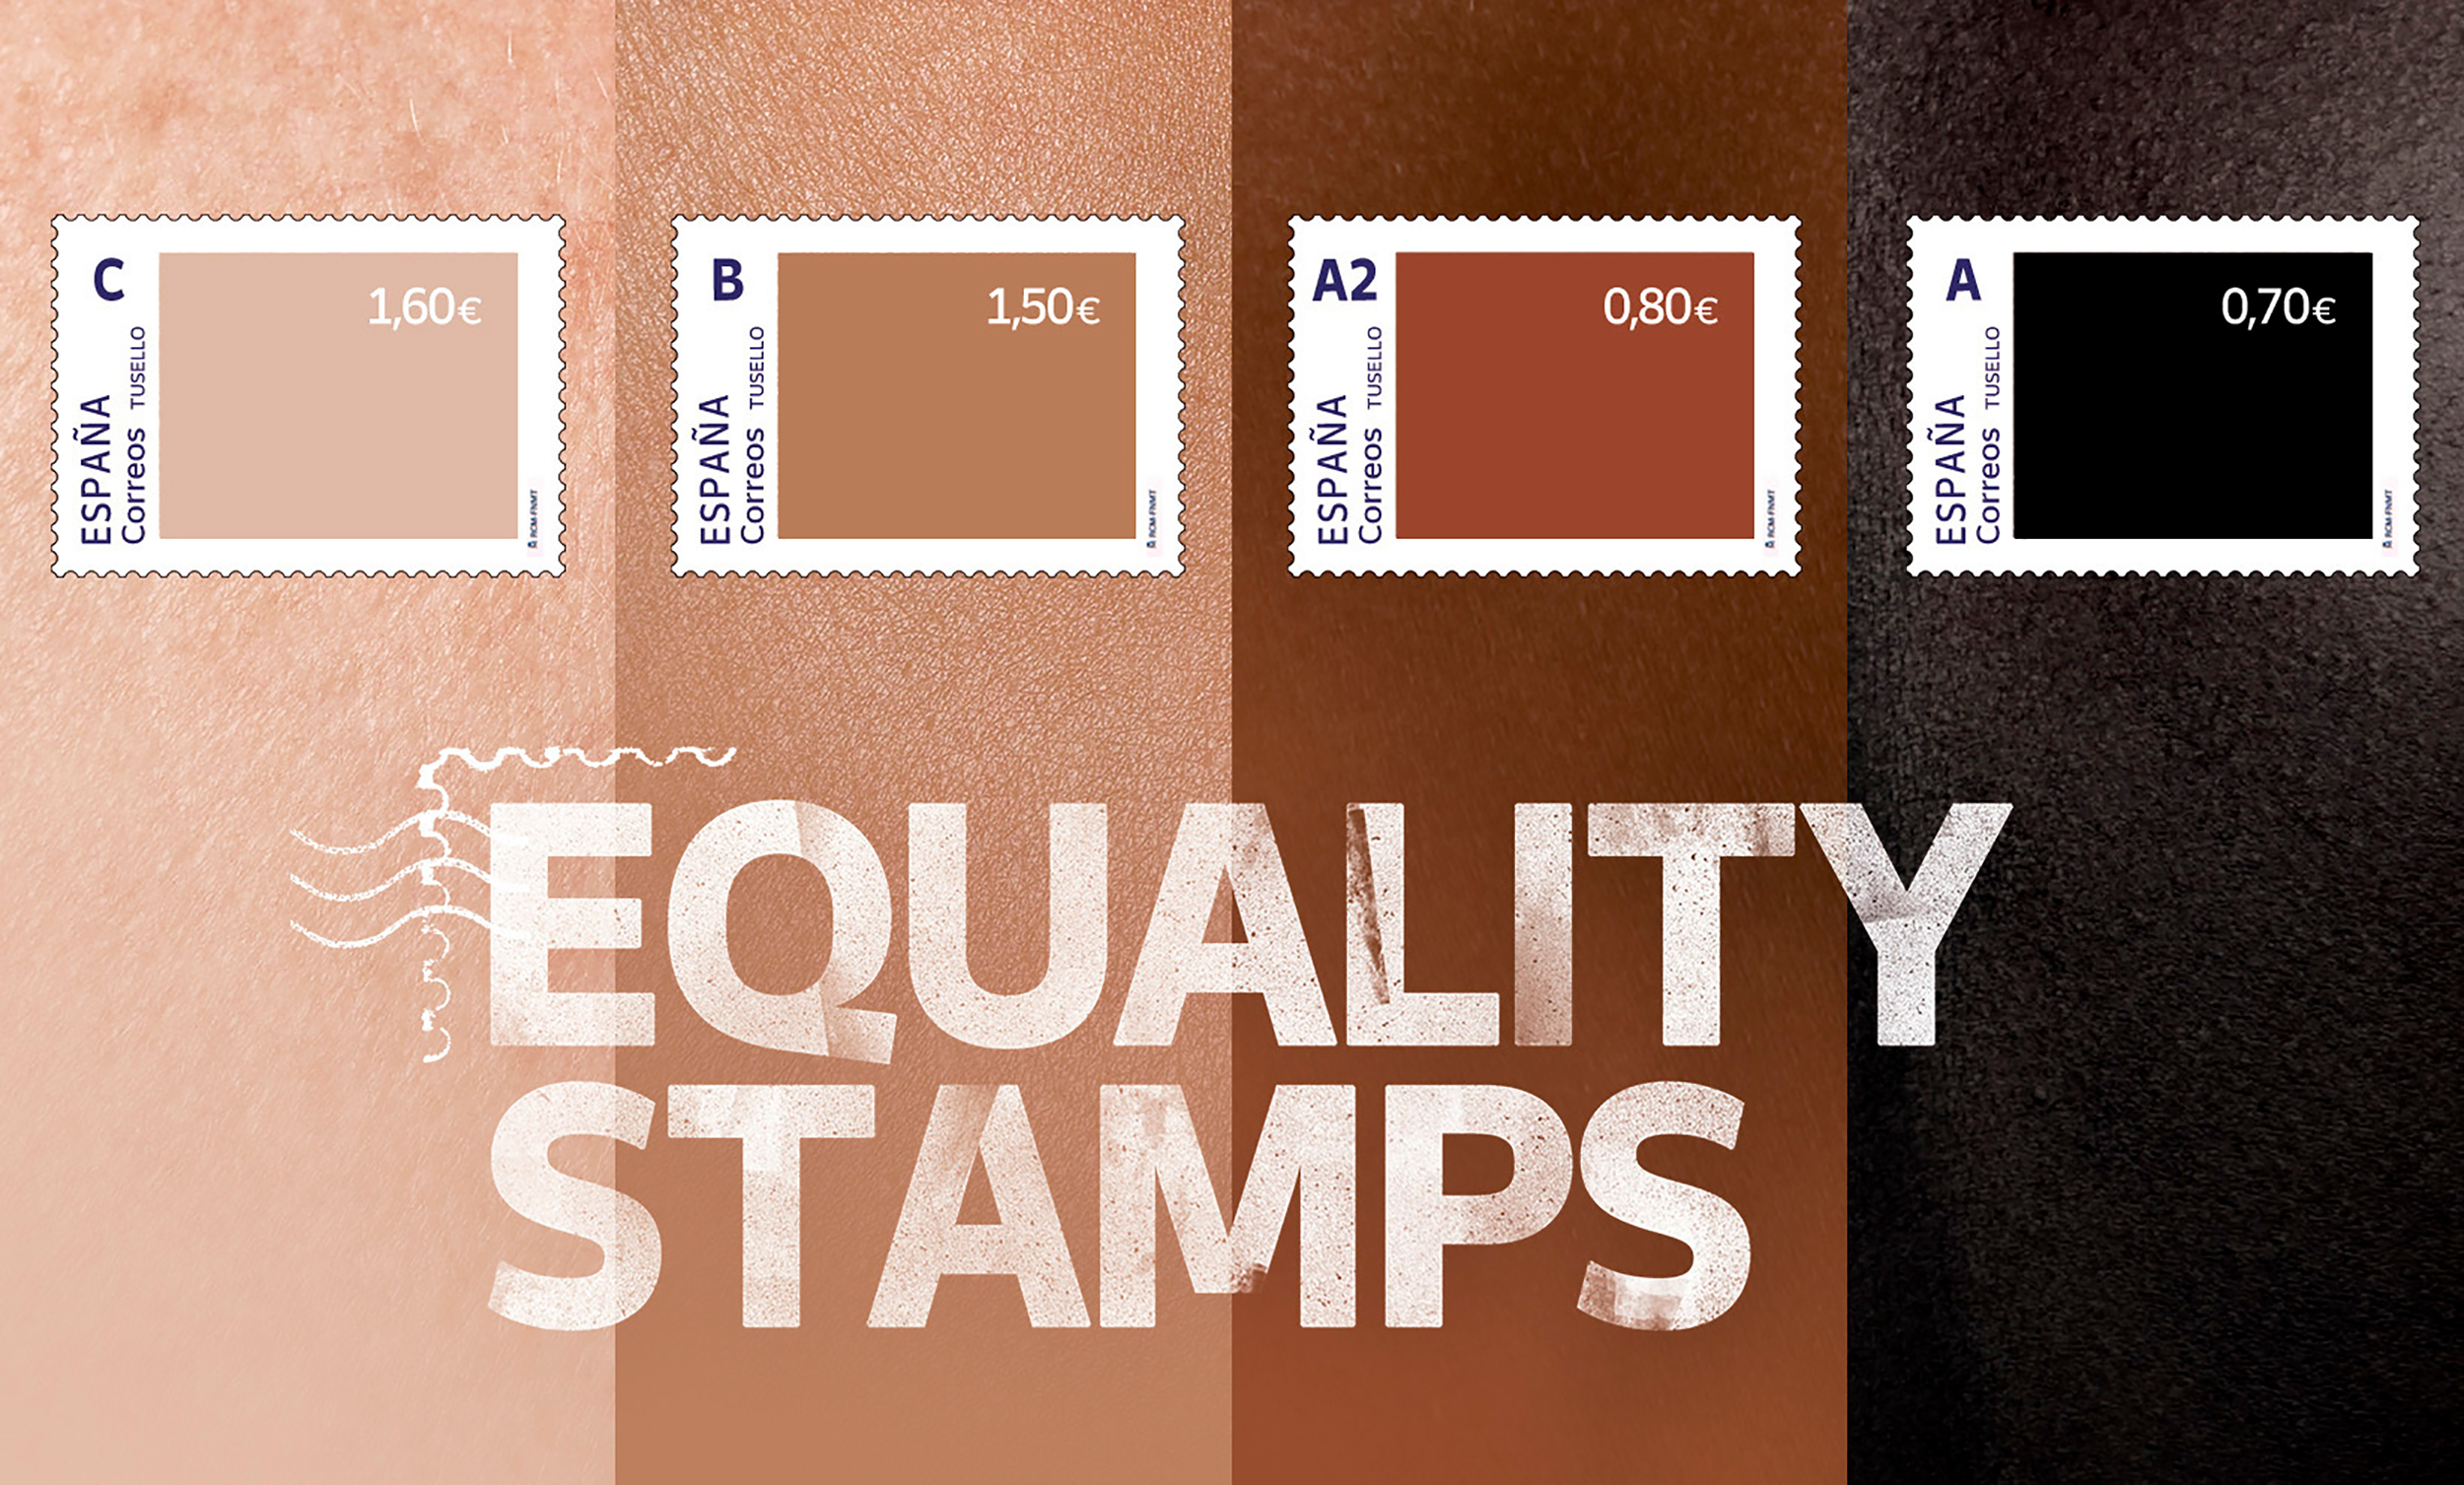 Spain's postal service ends its skin color-inspired stamp campaign that made the lightest stamps the most expensive